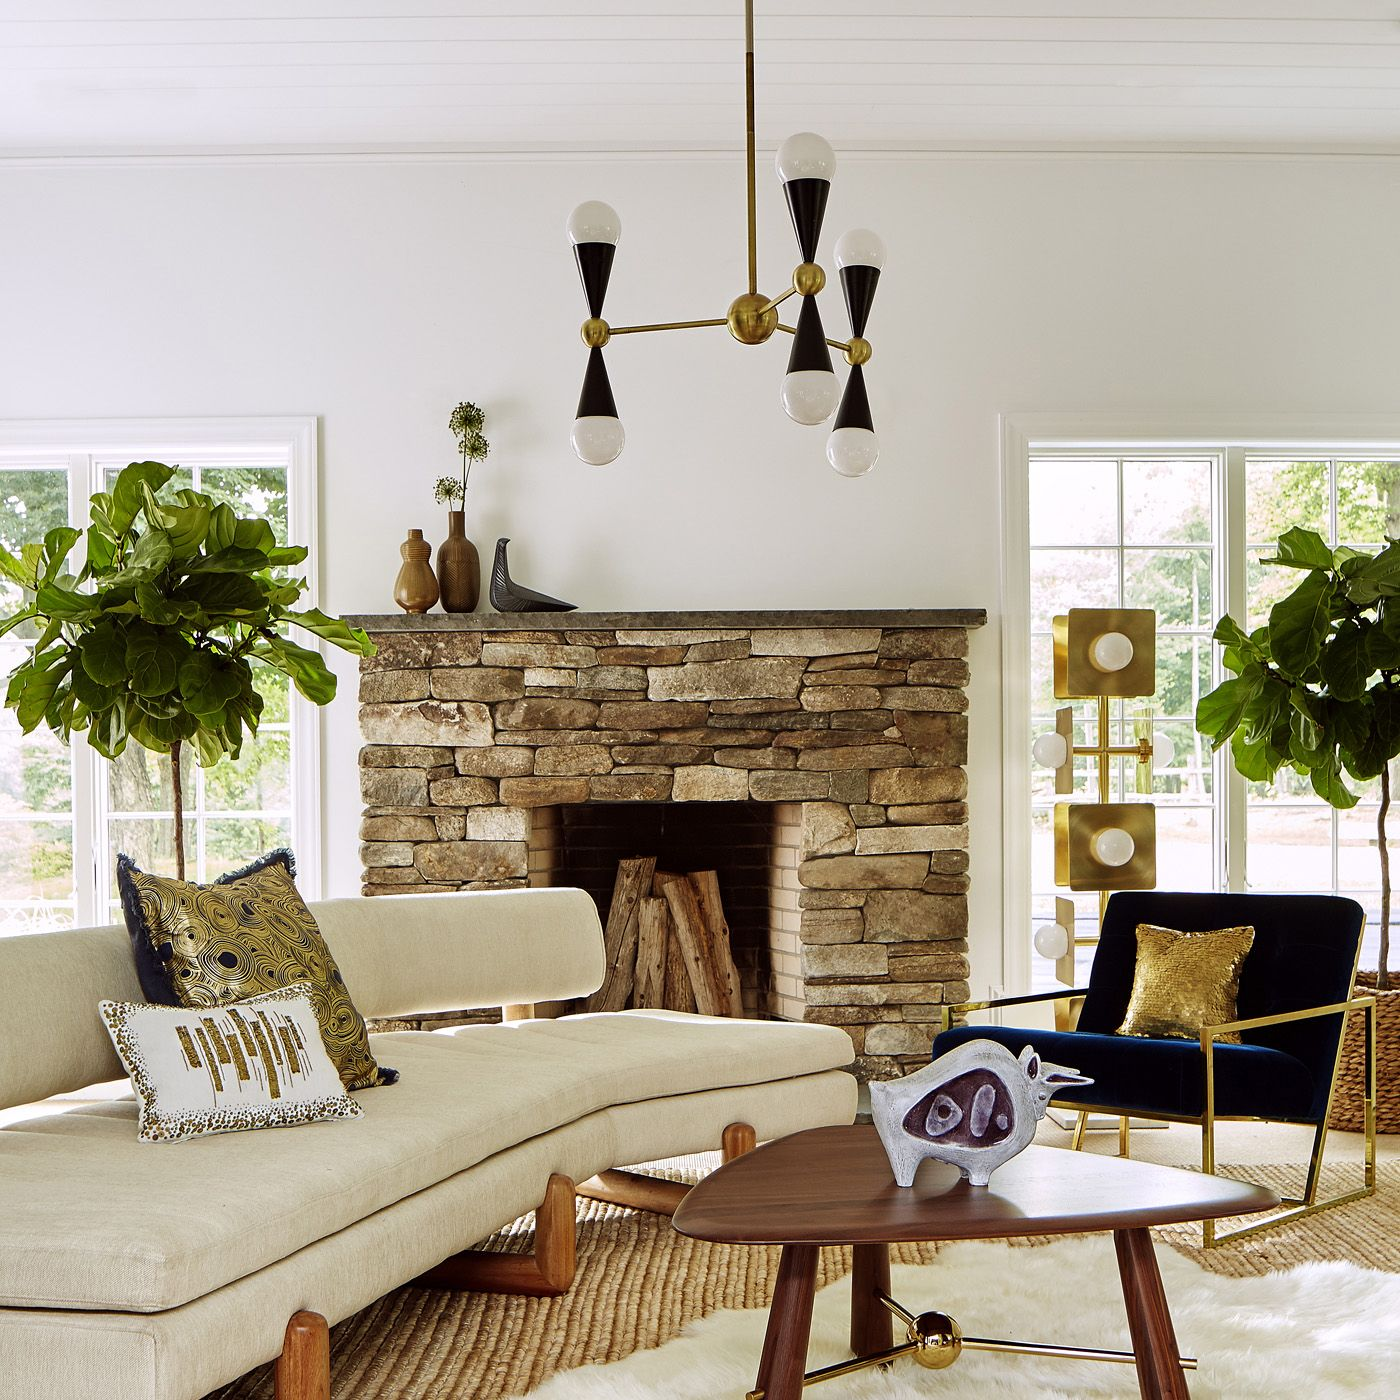 Caracas 3 Arm Chandelier and Aspen Couch from Jonathan Adler